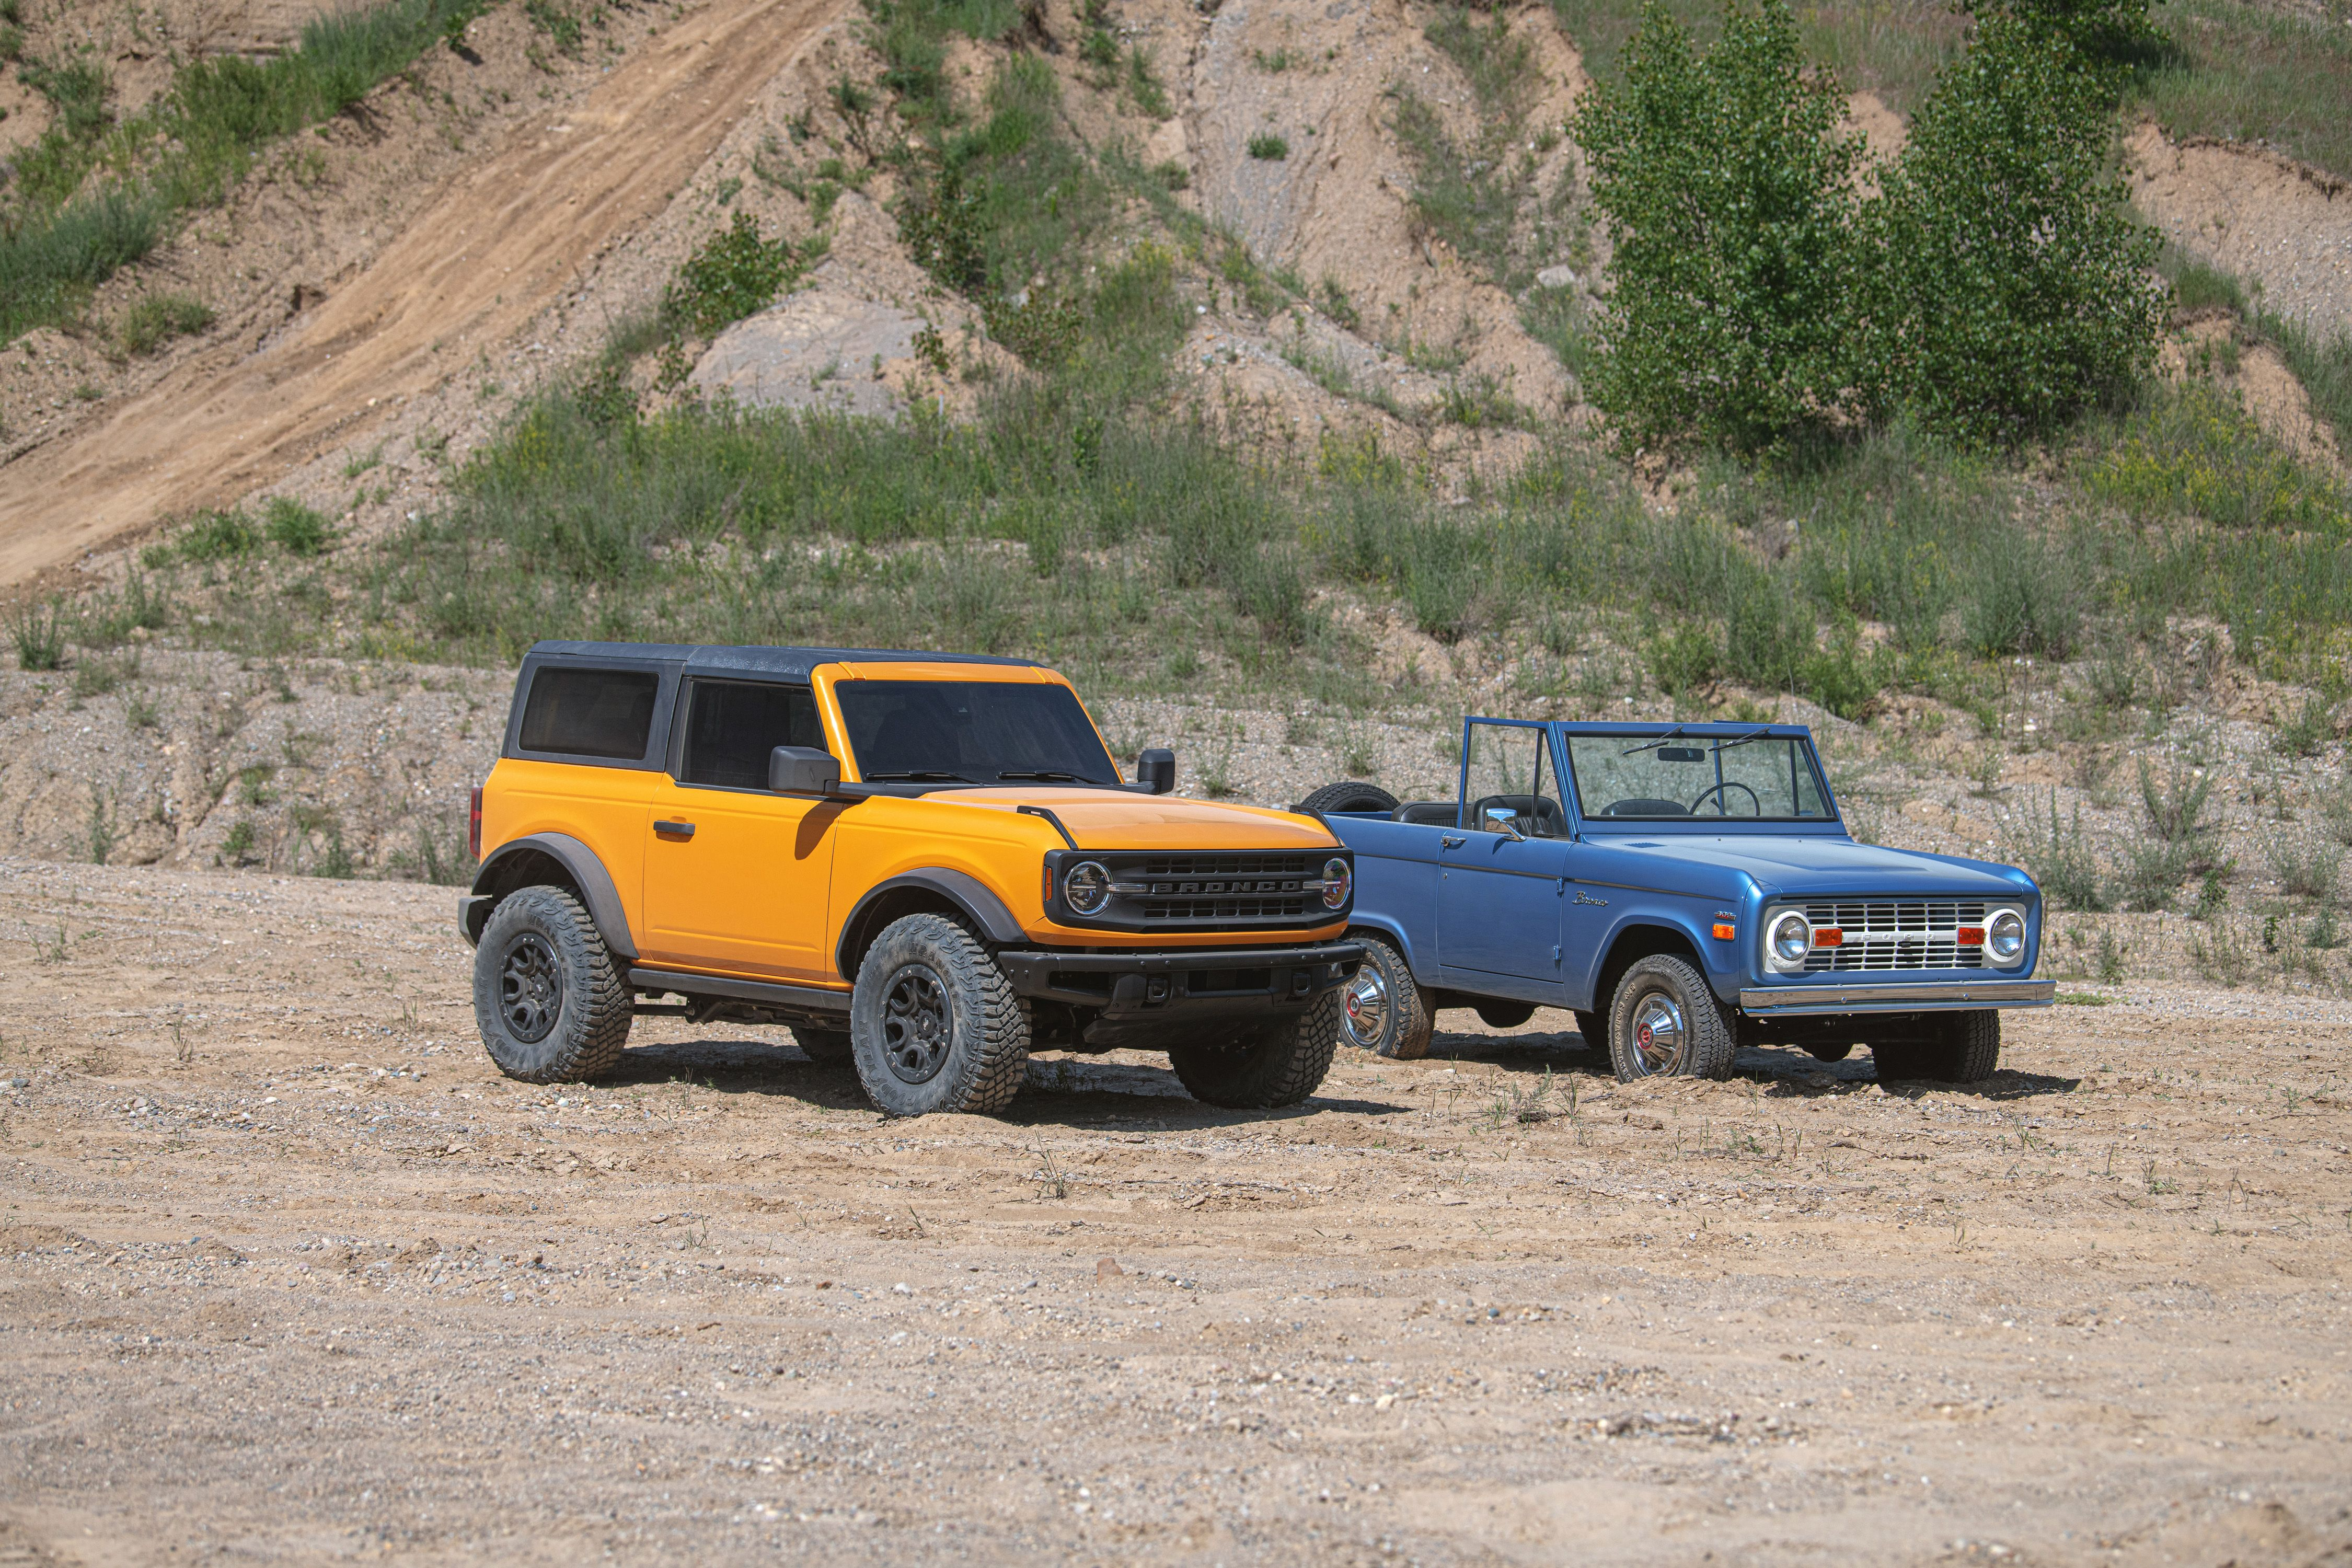 Here S How The 2021 Ford Bronco S Size Compares To Old Broncos